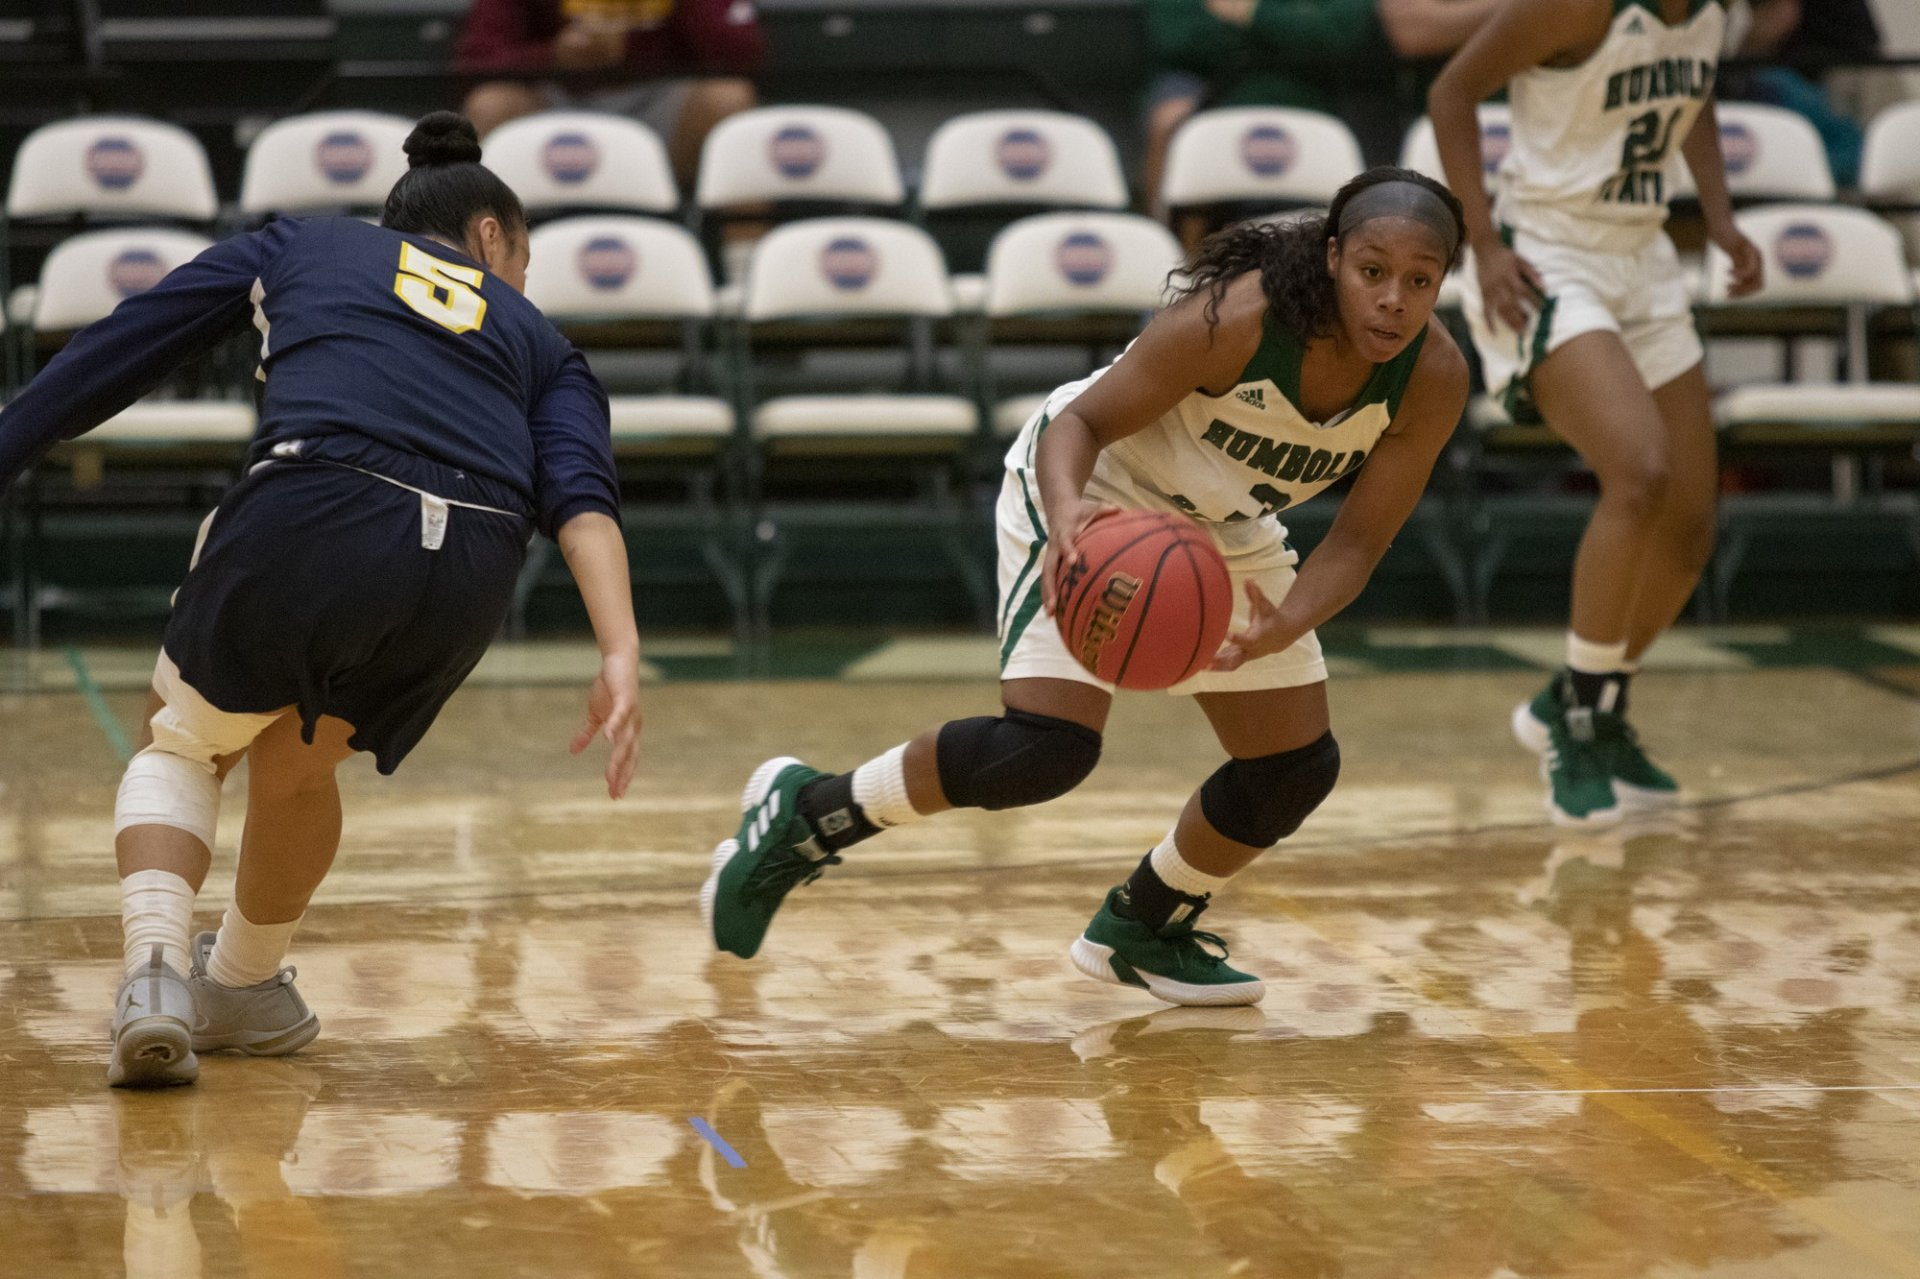 Junior guard Tyra Turner (3) steals the ball early in the first quarter and takes it on the fast break to an eventual assist. Turner led the Jacks with 6 assists on the night. | Photo by Matt Shiffler